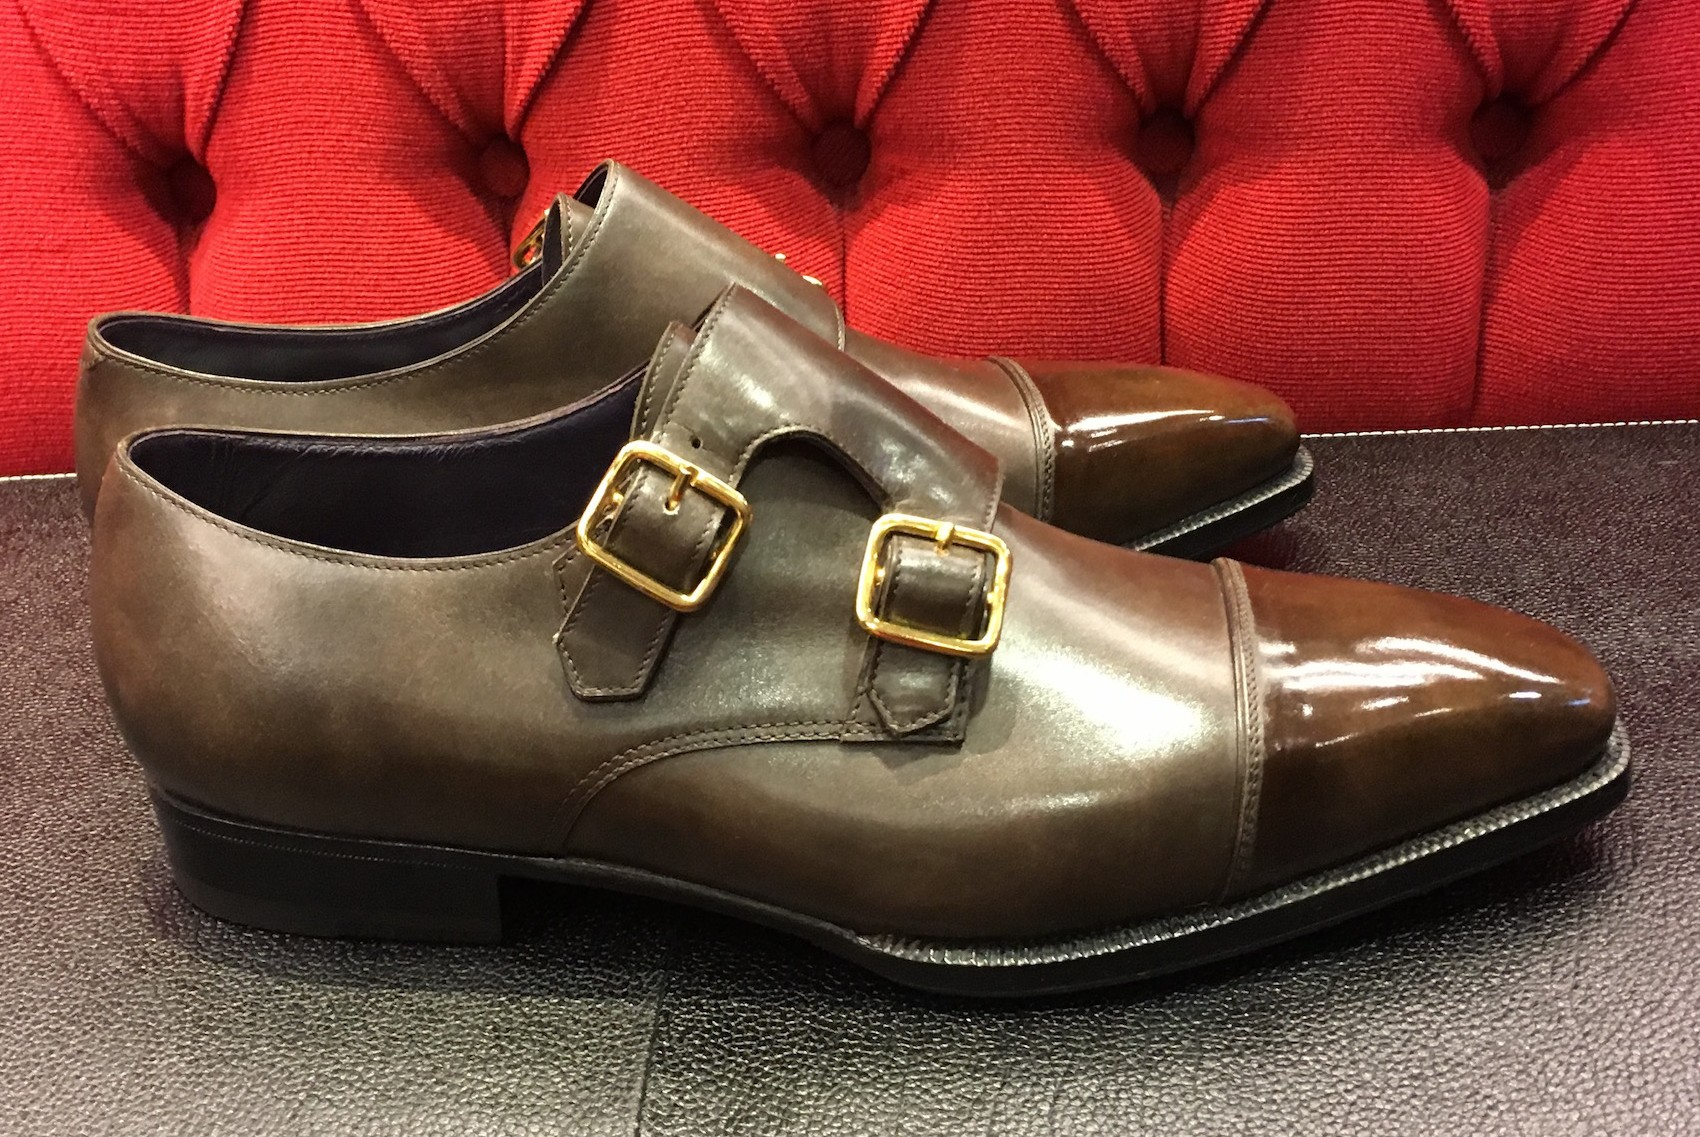 Handmade Shoes from Italy – Enzo Bonafè Museum Calf Leather